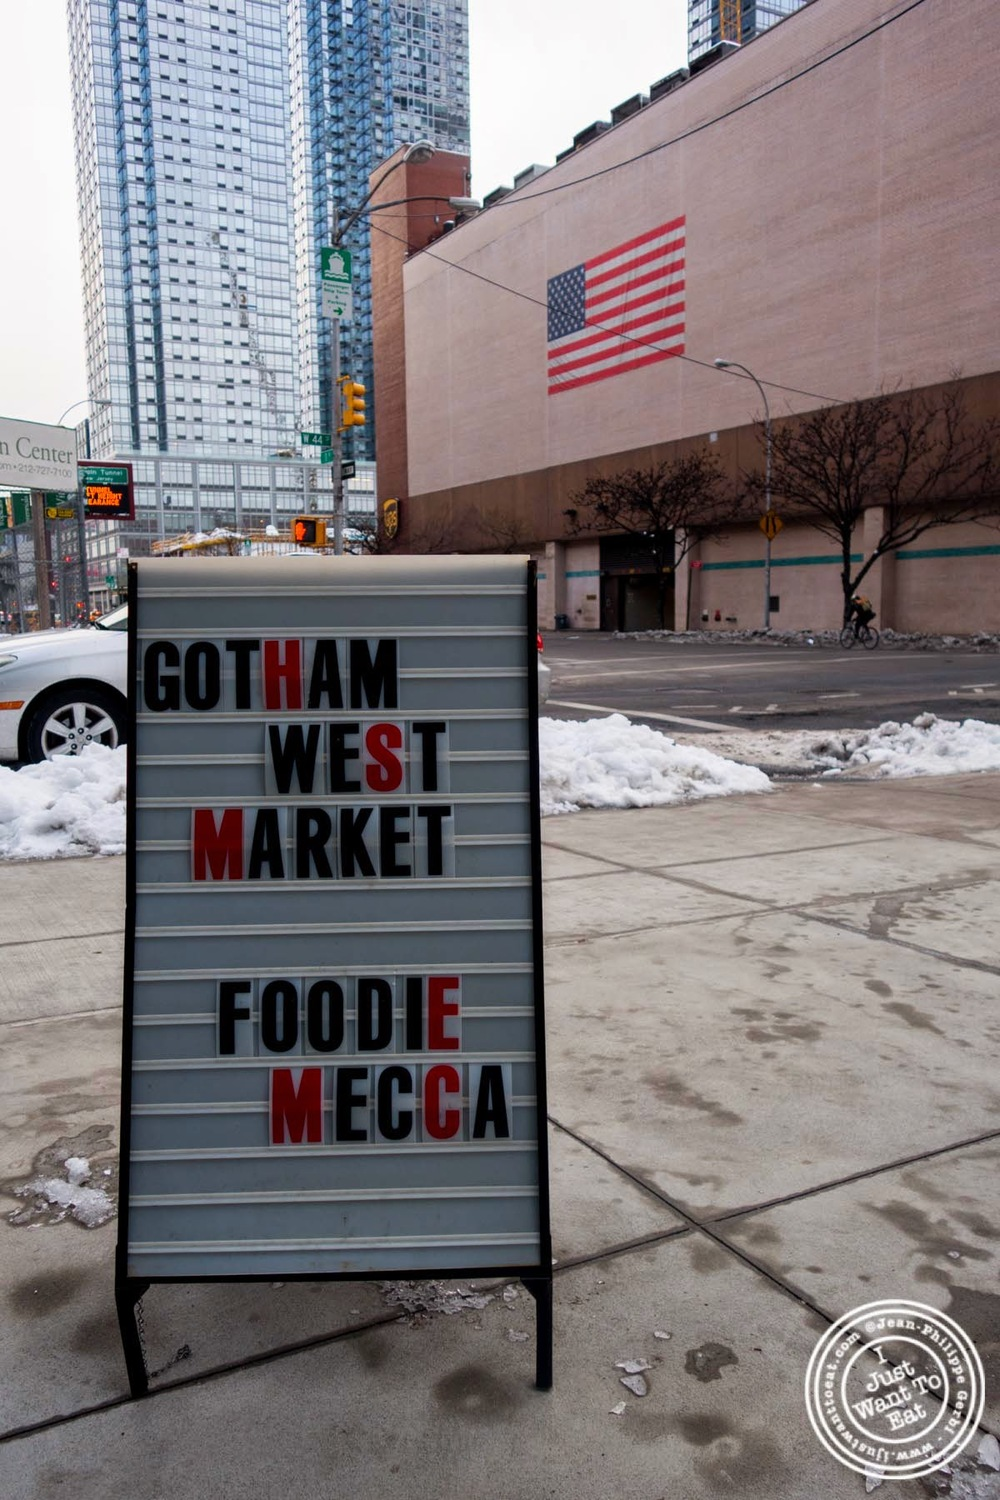 image of The Gotham West Market